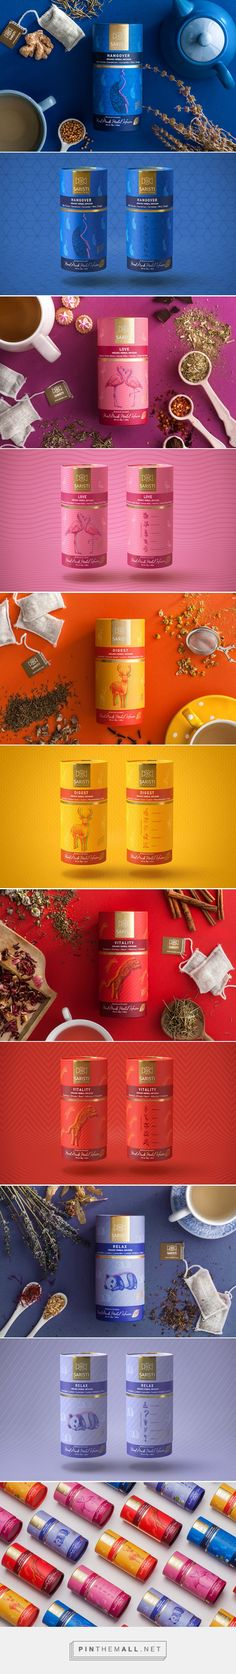 SARISTI The Botany of Harmony, tea packaging by Antonia Skaraki. Source: Daily Package Design Inspiration. Pin curated by SFields99 #sfields99 #packaging #design #inspiration #ideas #range #color #typography #illustration #concept #product #tea #beverages #drinks